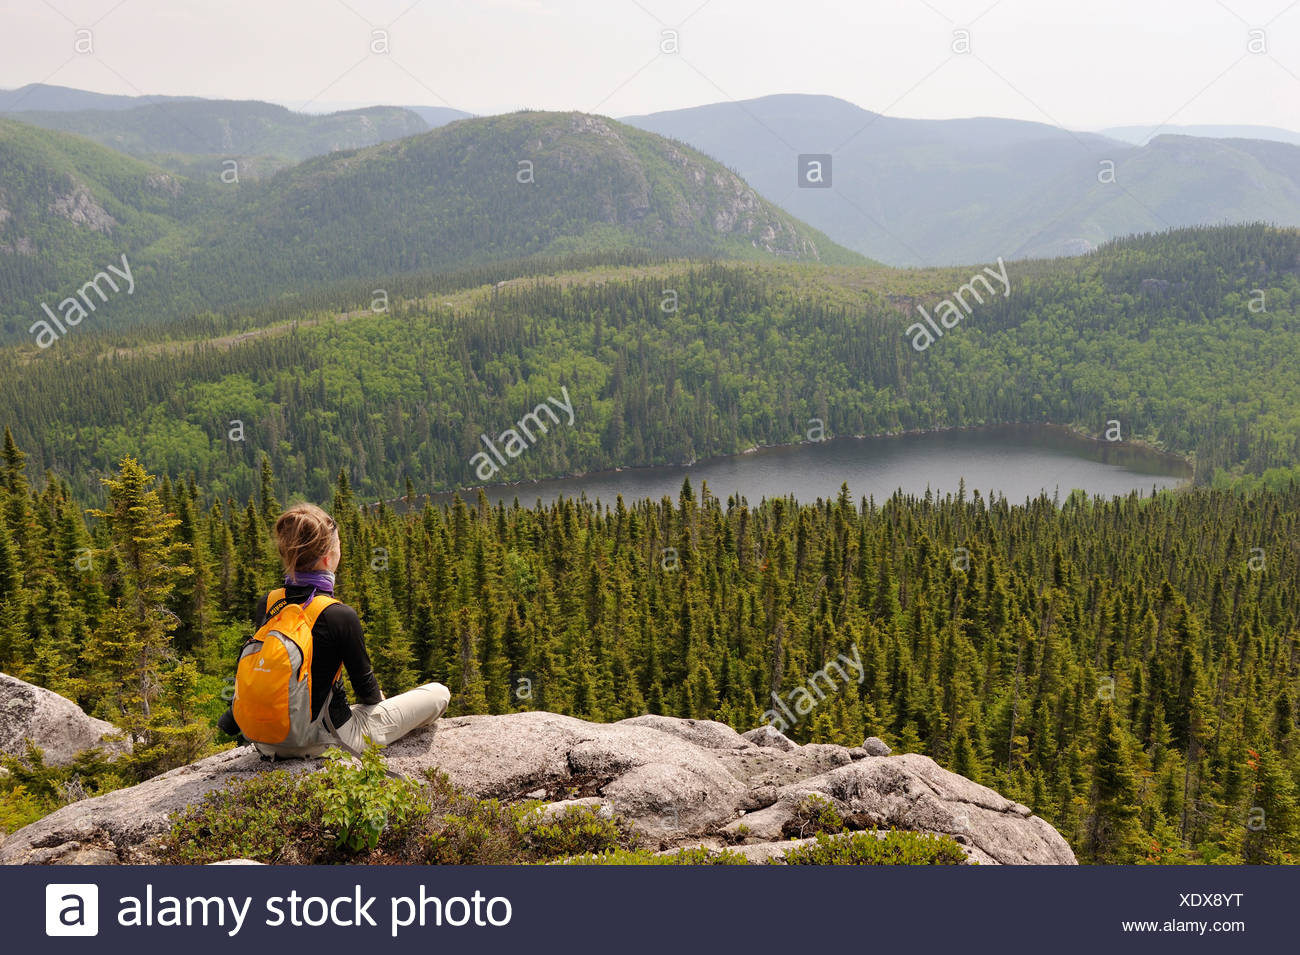 Grand Jardins National Park Quebec Canada Stockfotos & Grand Jardins ...